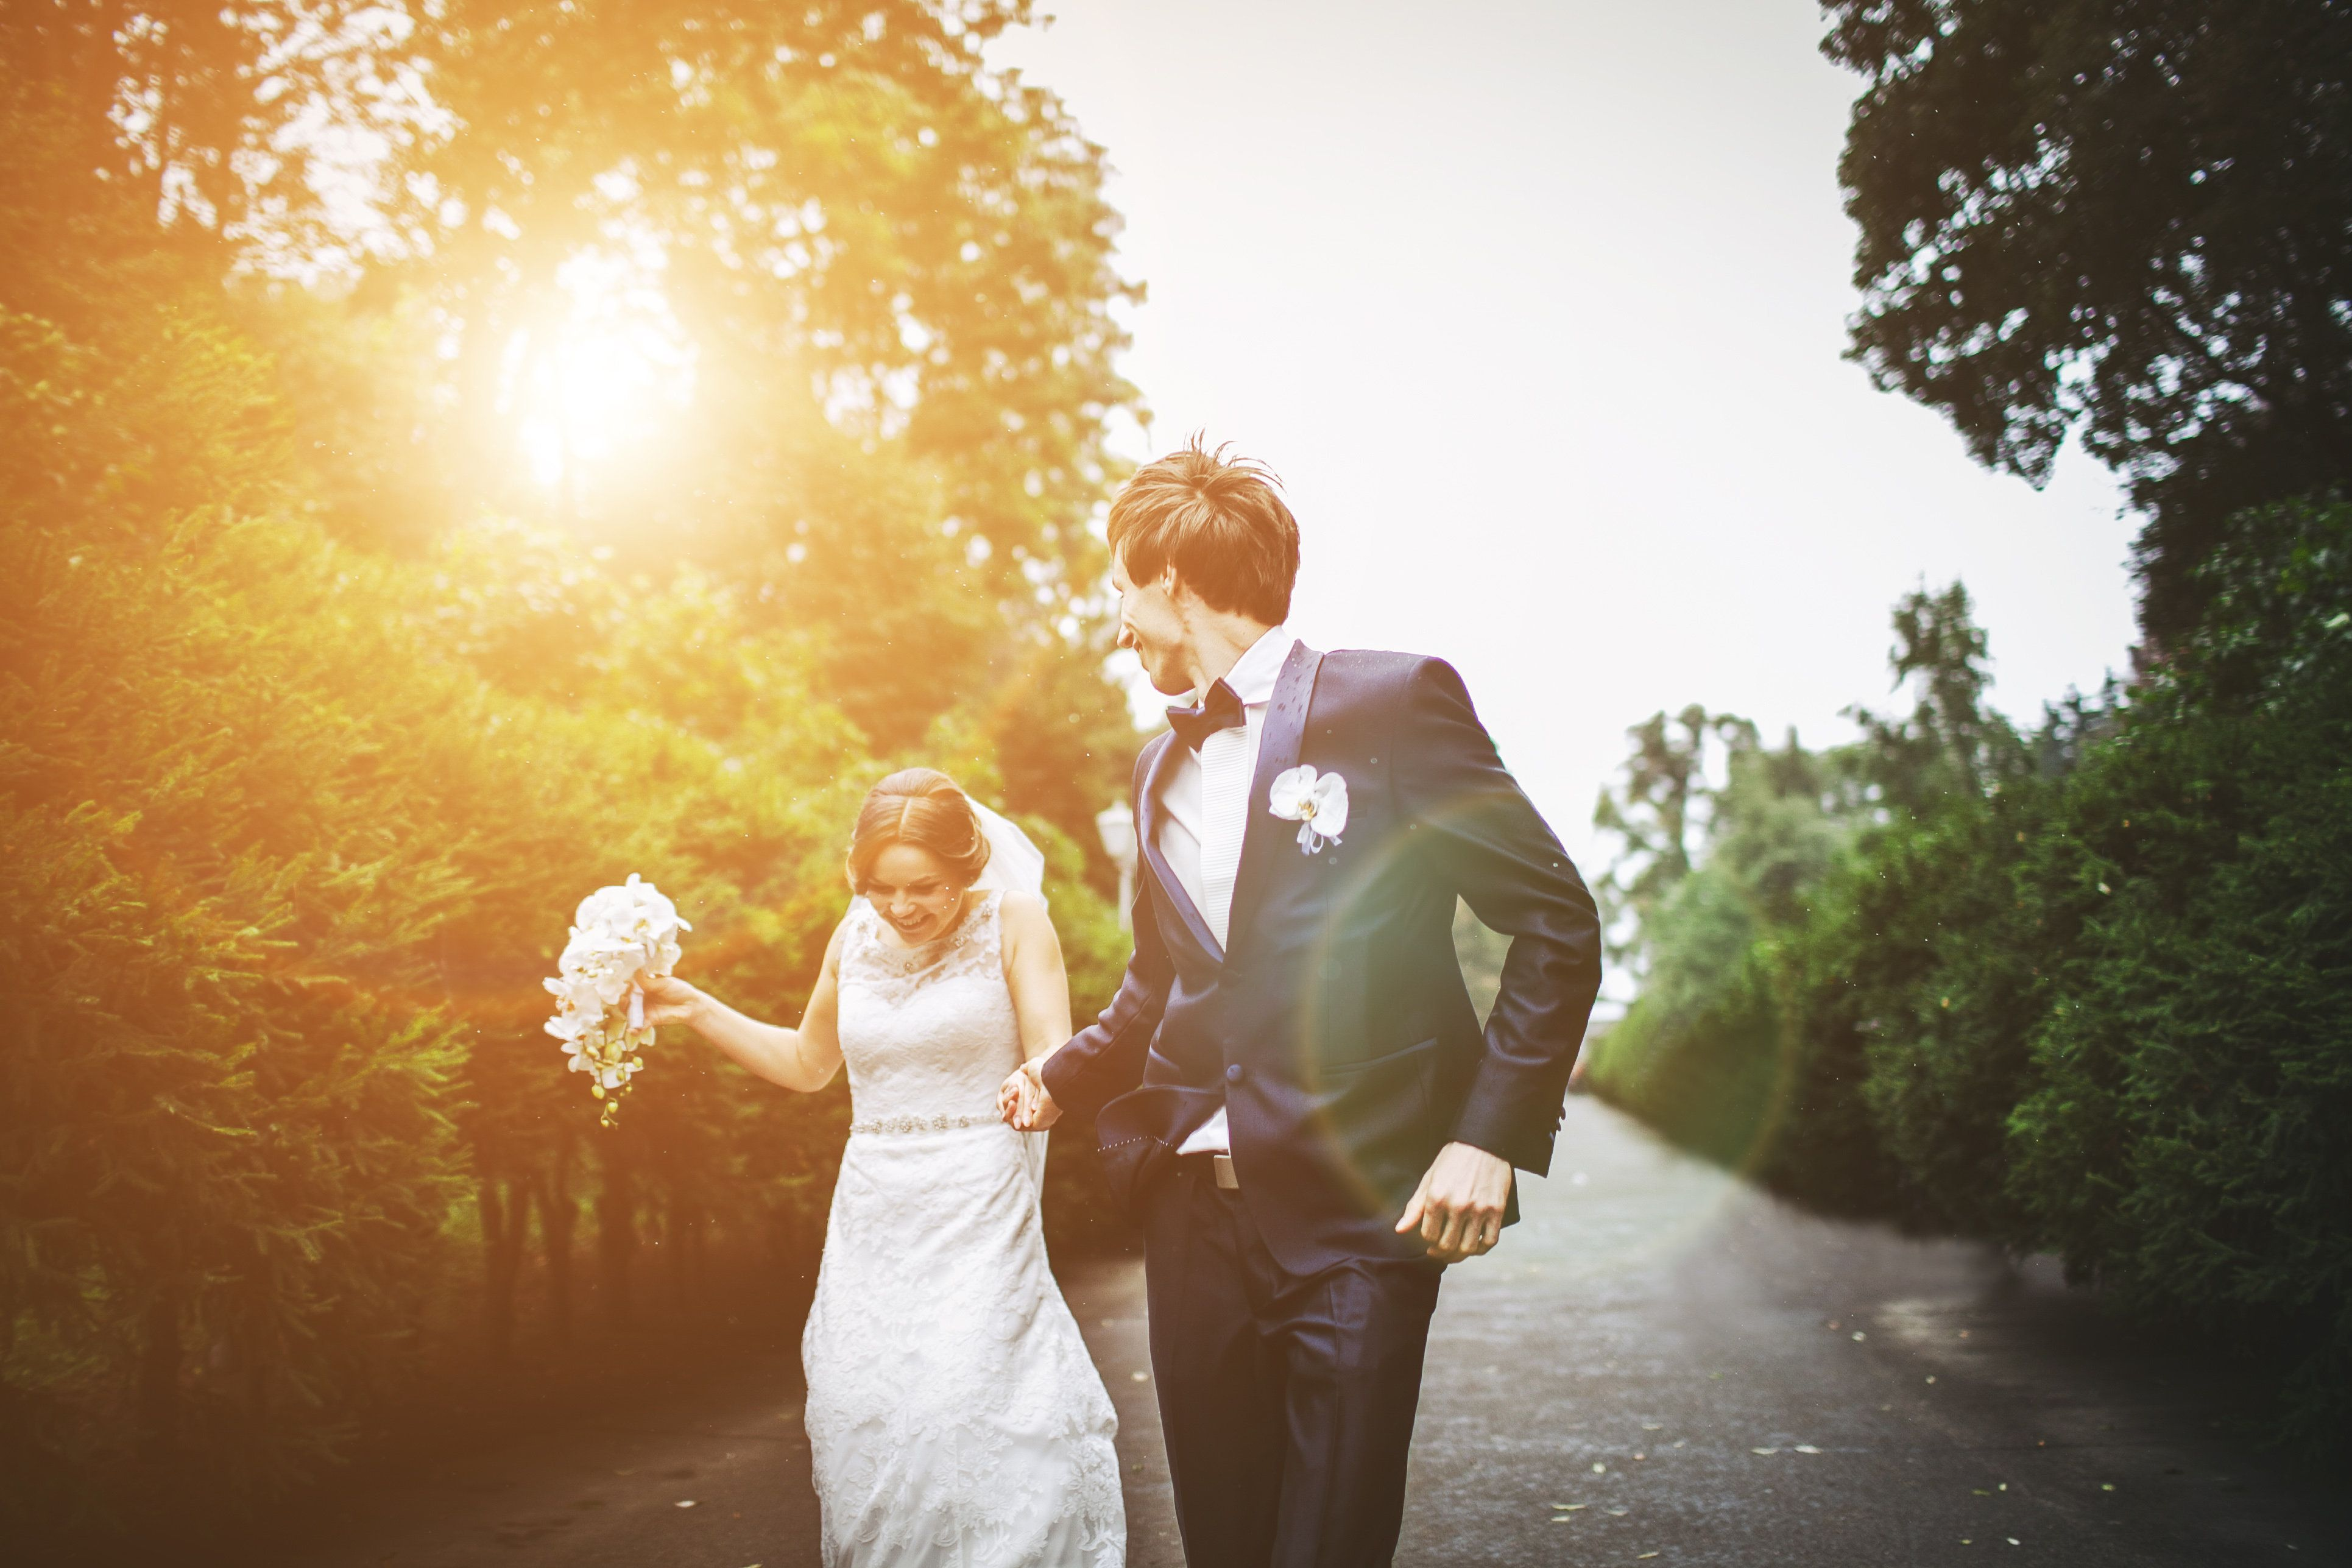 7 Things That Women Who Got Married Young Want Other Women To